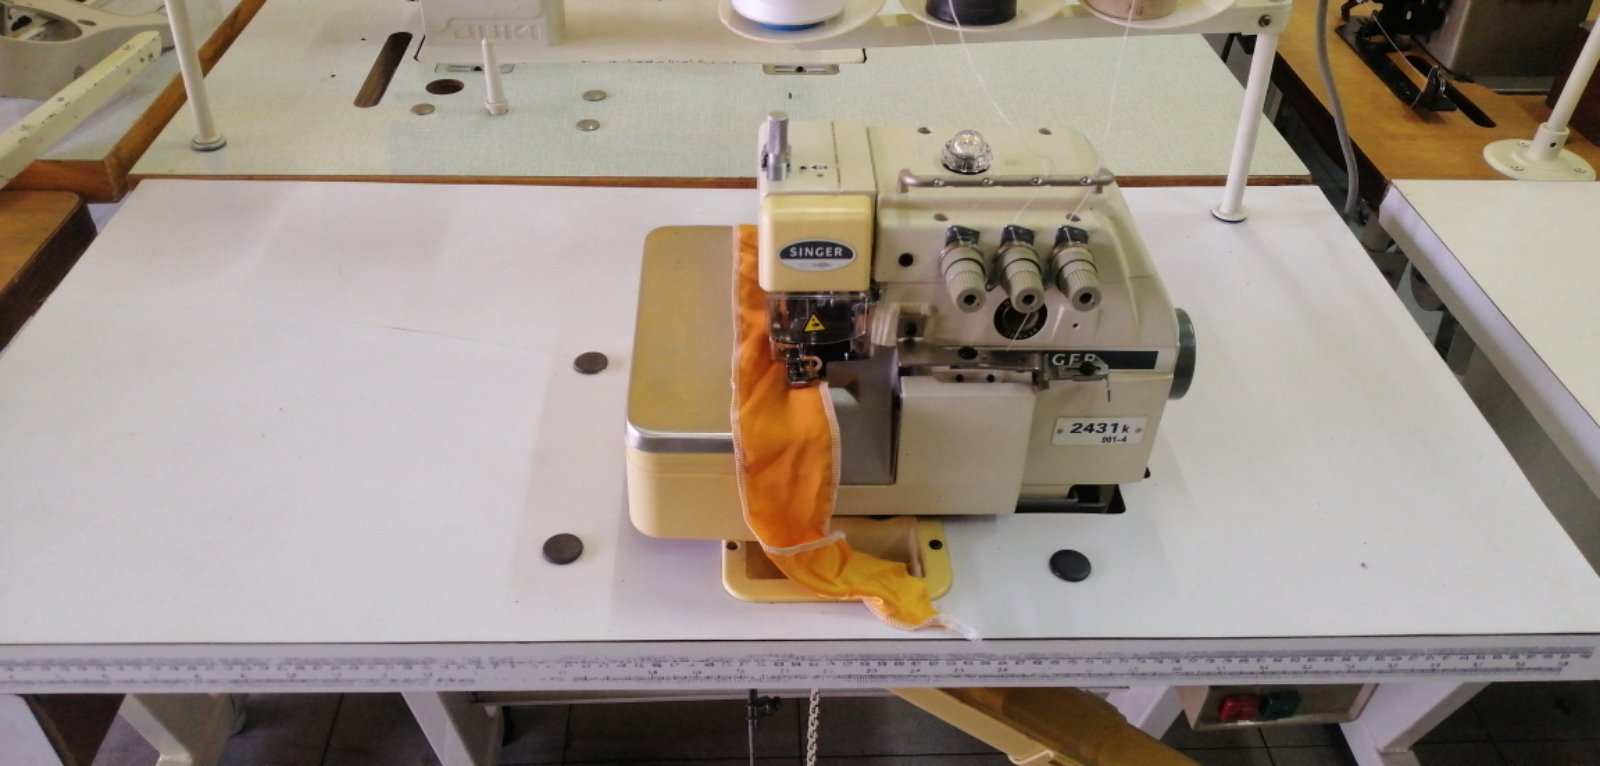 User Singer Overlock Industrial Sewing Machine